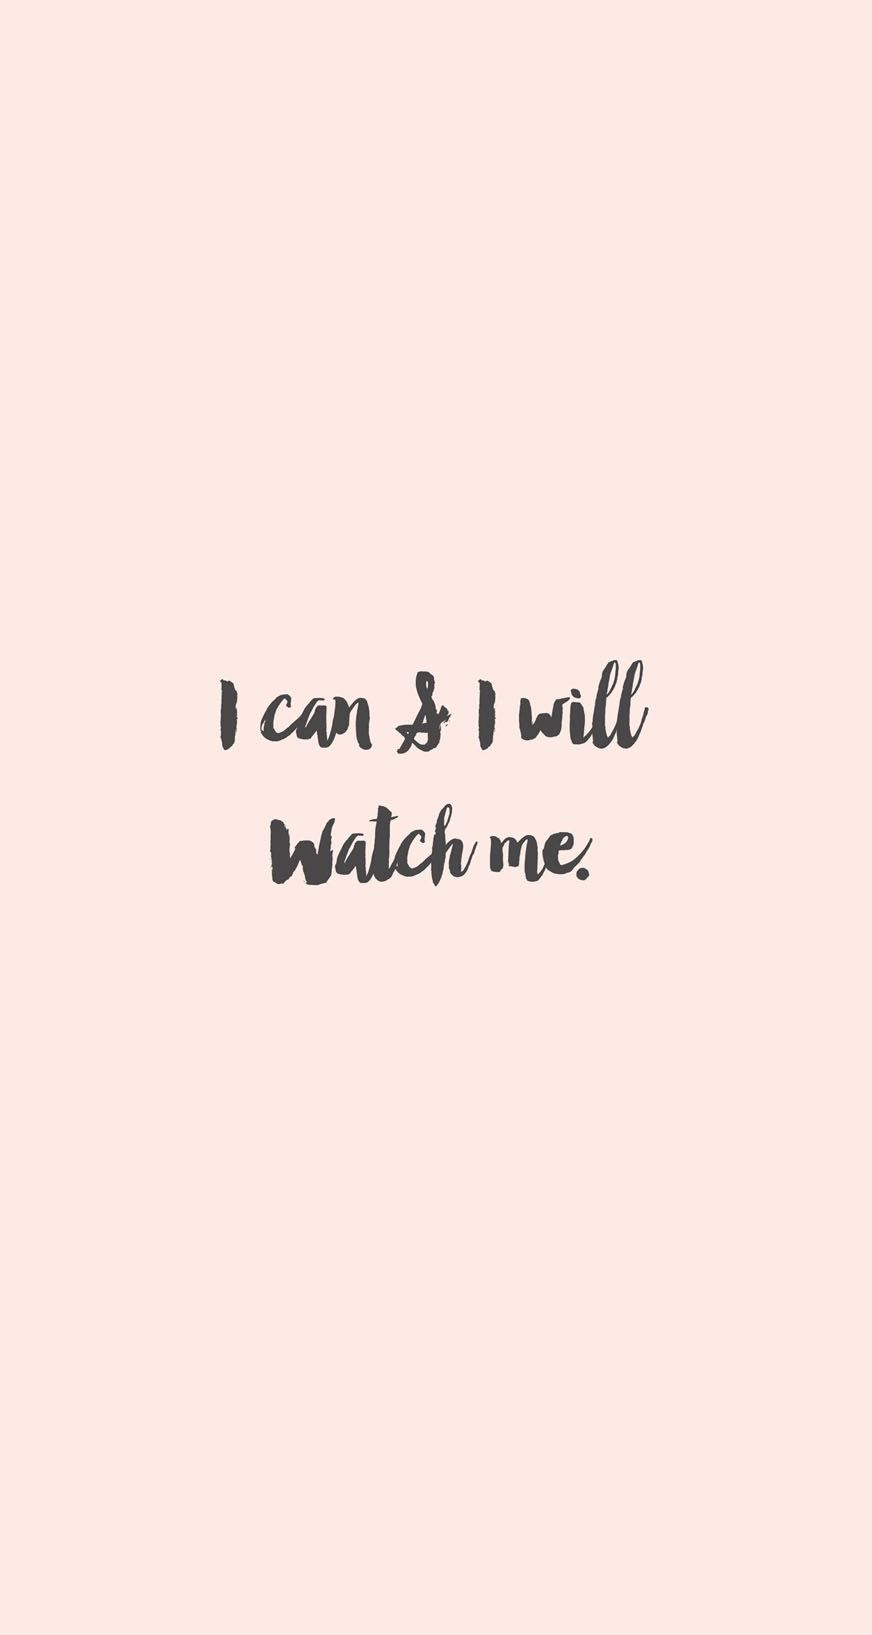 I can and i will watch me quotes pinterest for Where can i get wallpaper